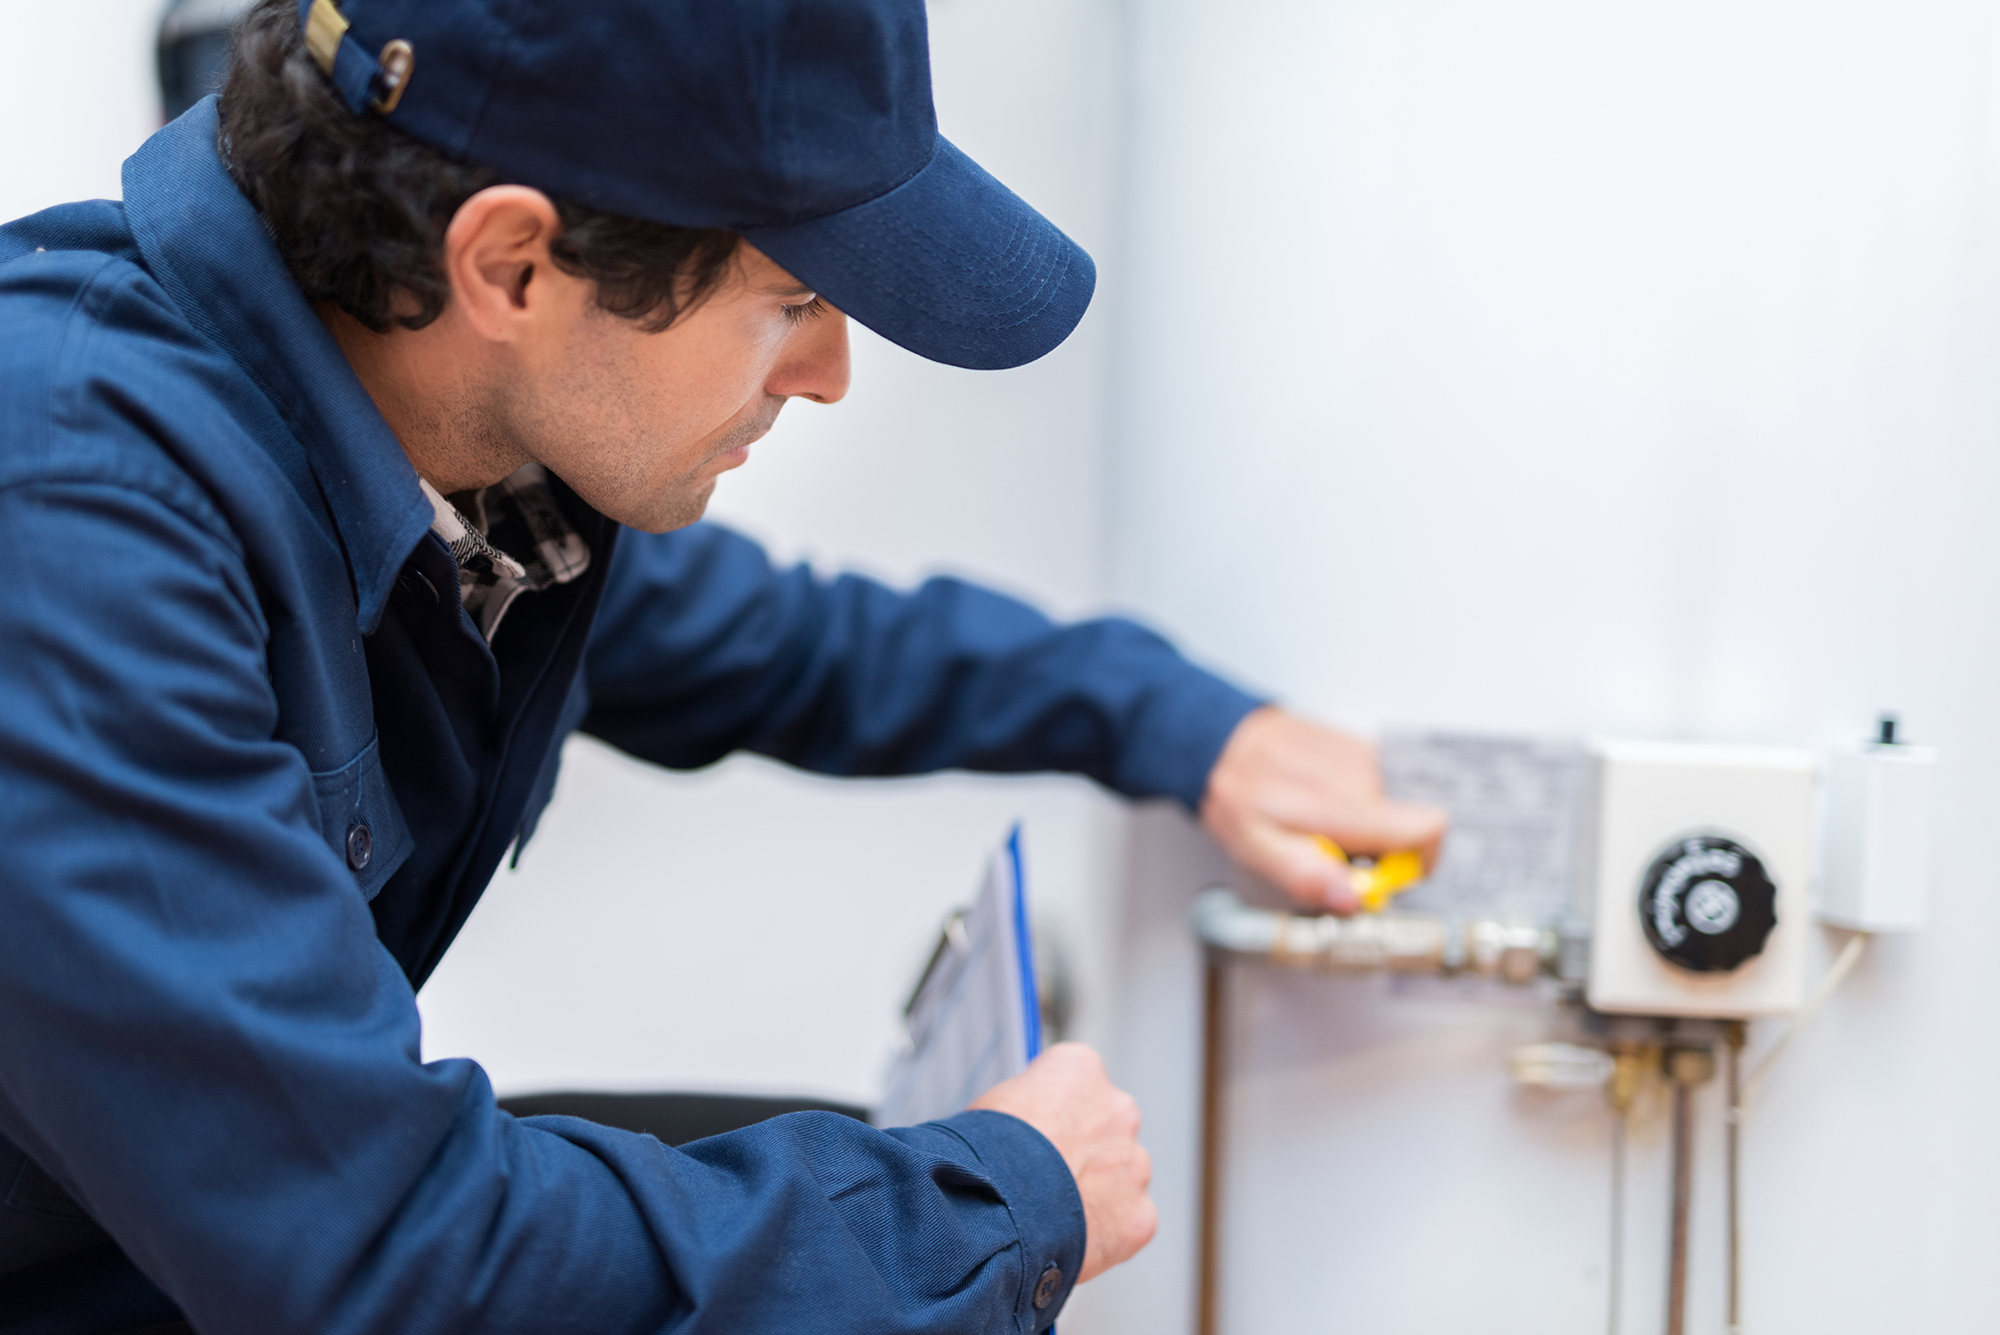 plumber in blue uniform with hat turning water valve